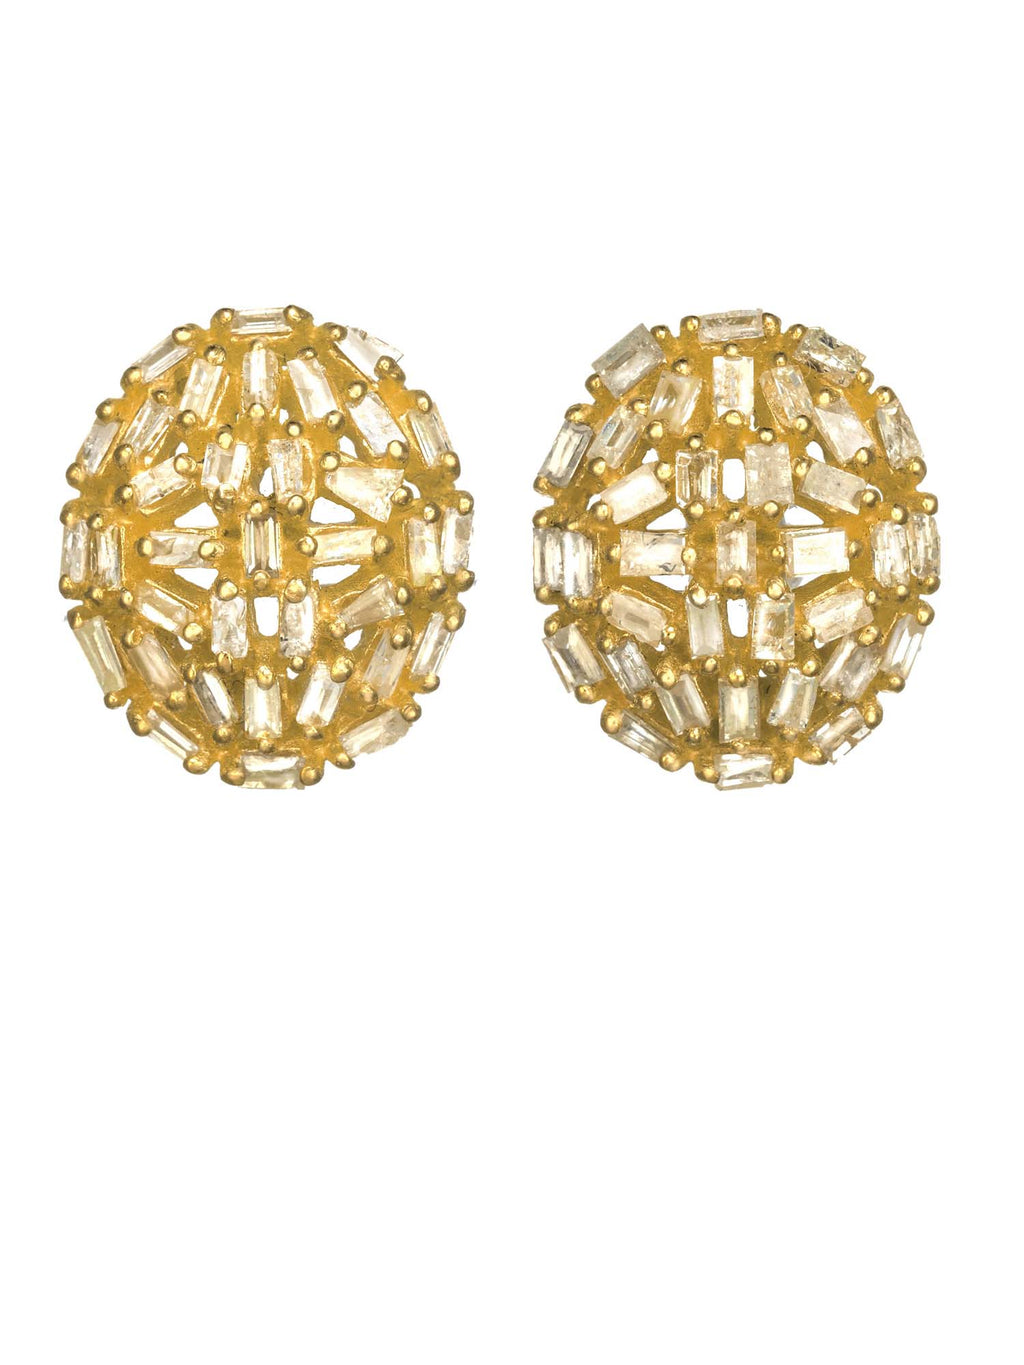 Margo Morrison Diamond Baguette Round Earrings